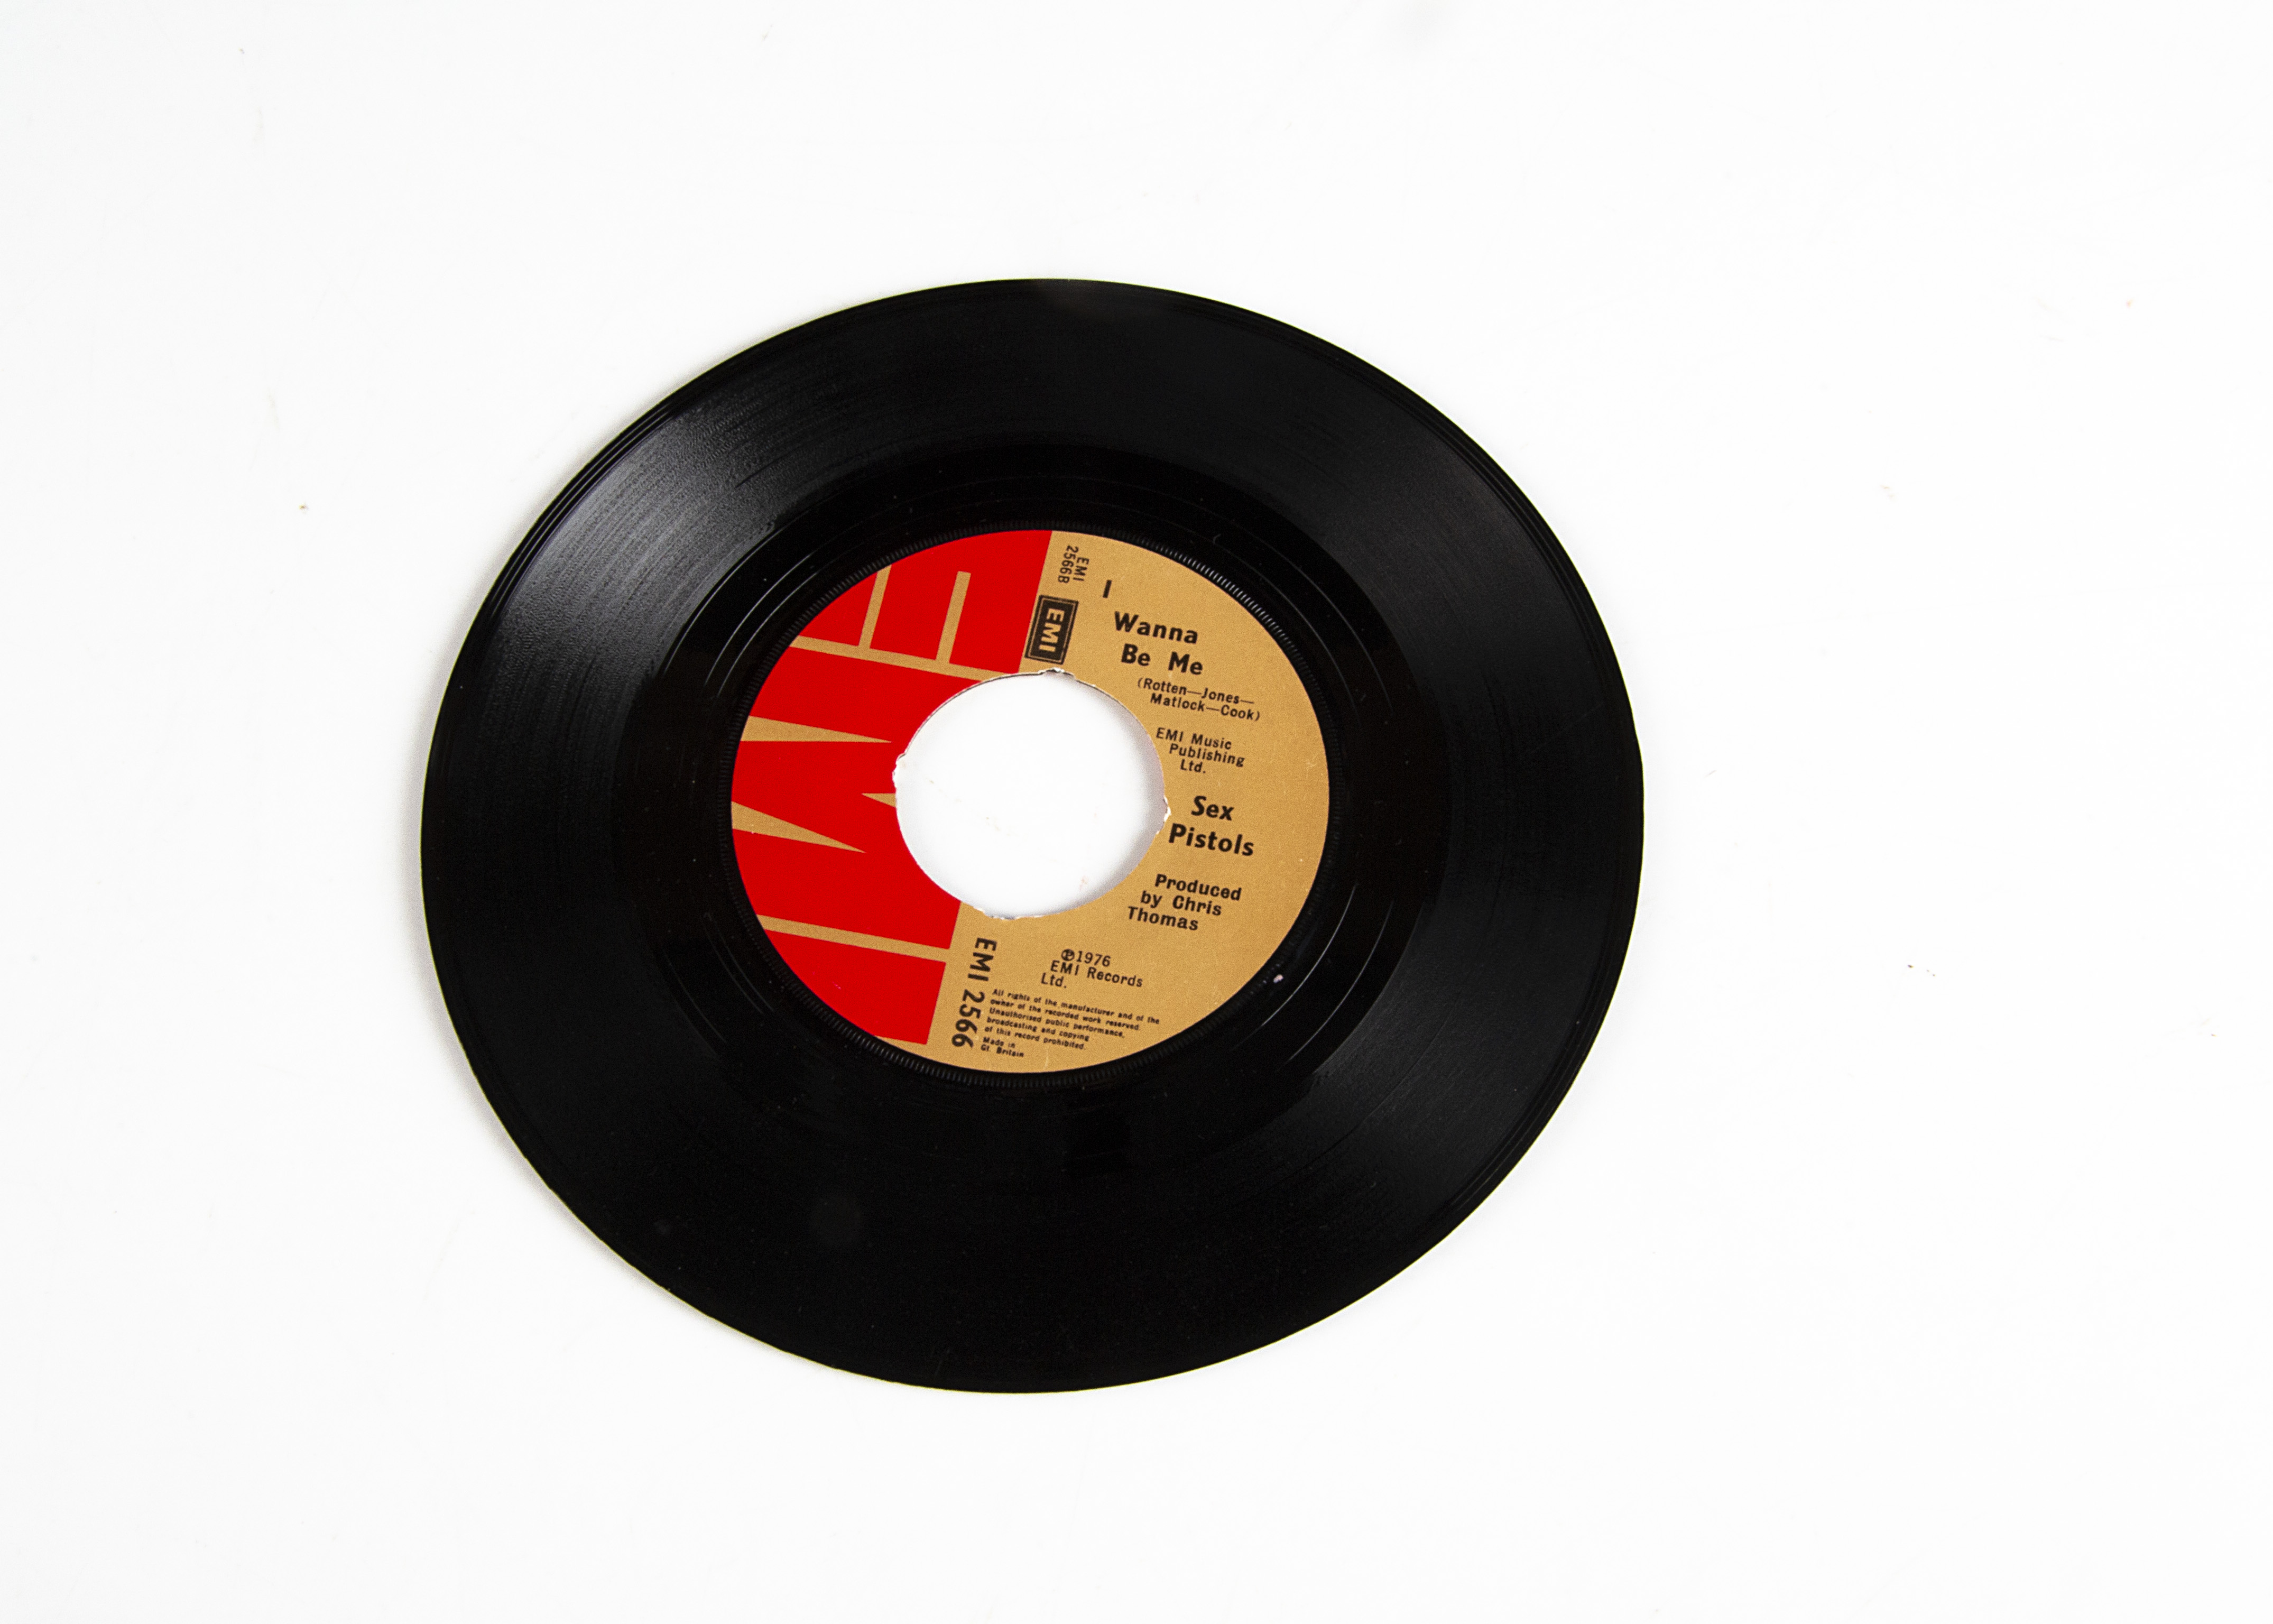 """Sex Pistols 7"""" Single, Anarchy In The UK b/w I Wanna Be Me 7"""" Single - Original UK release 1976 on - Image 2 of 2"""